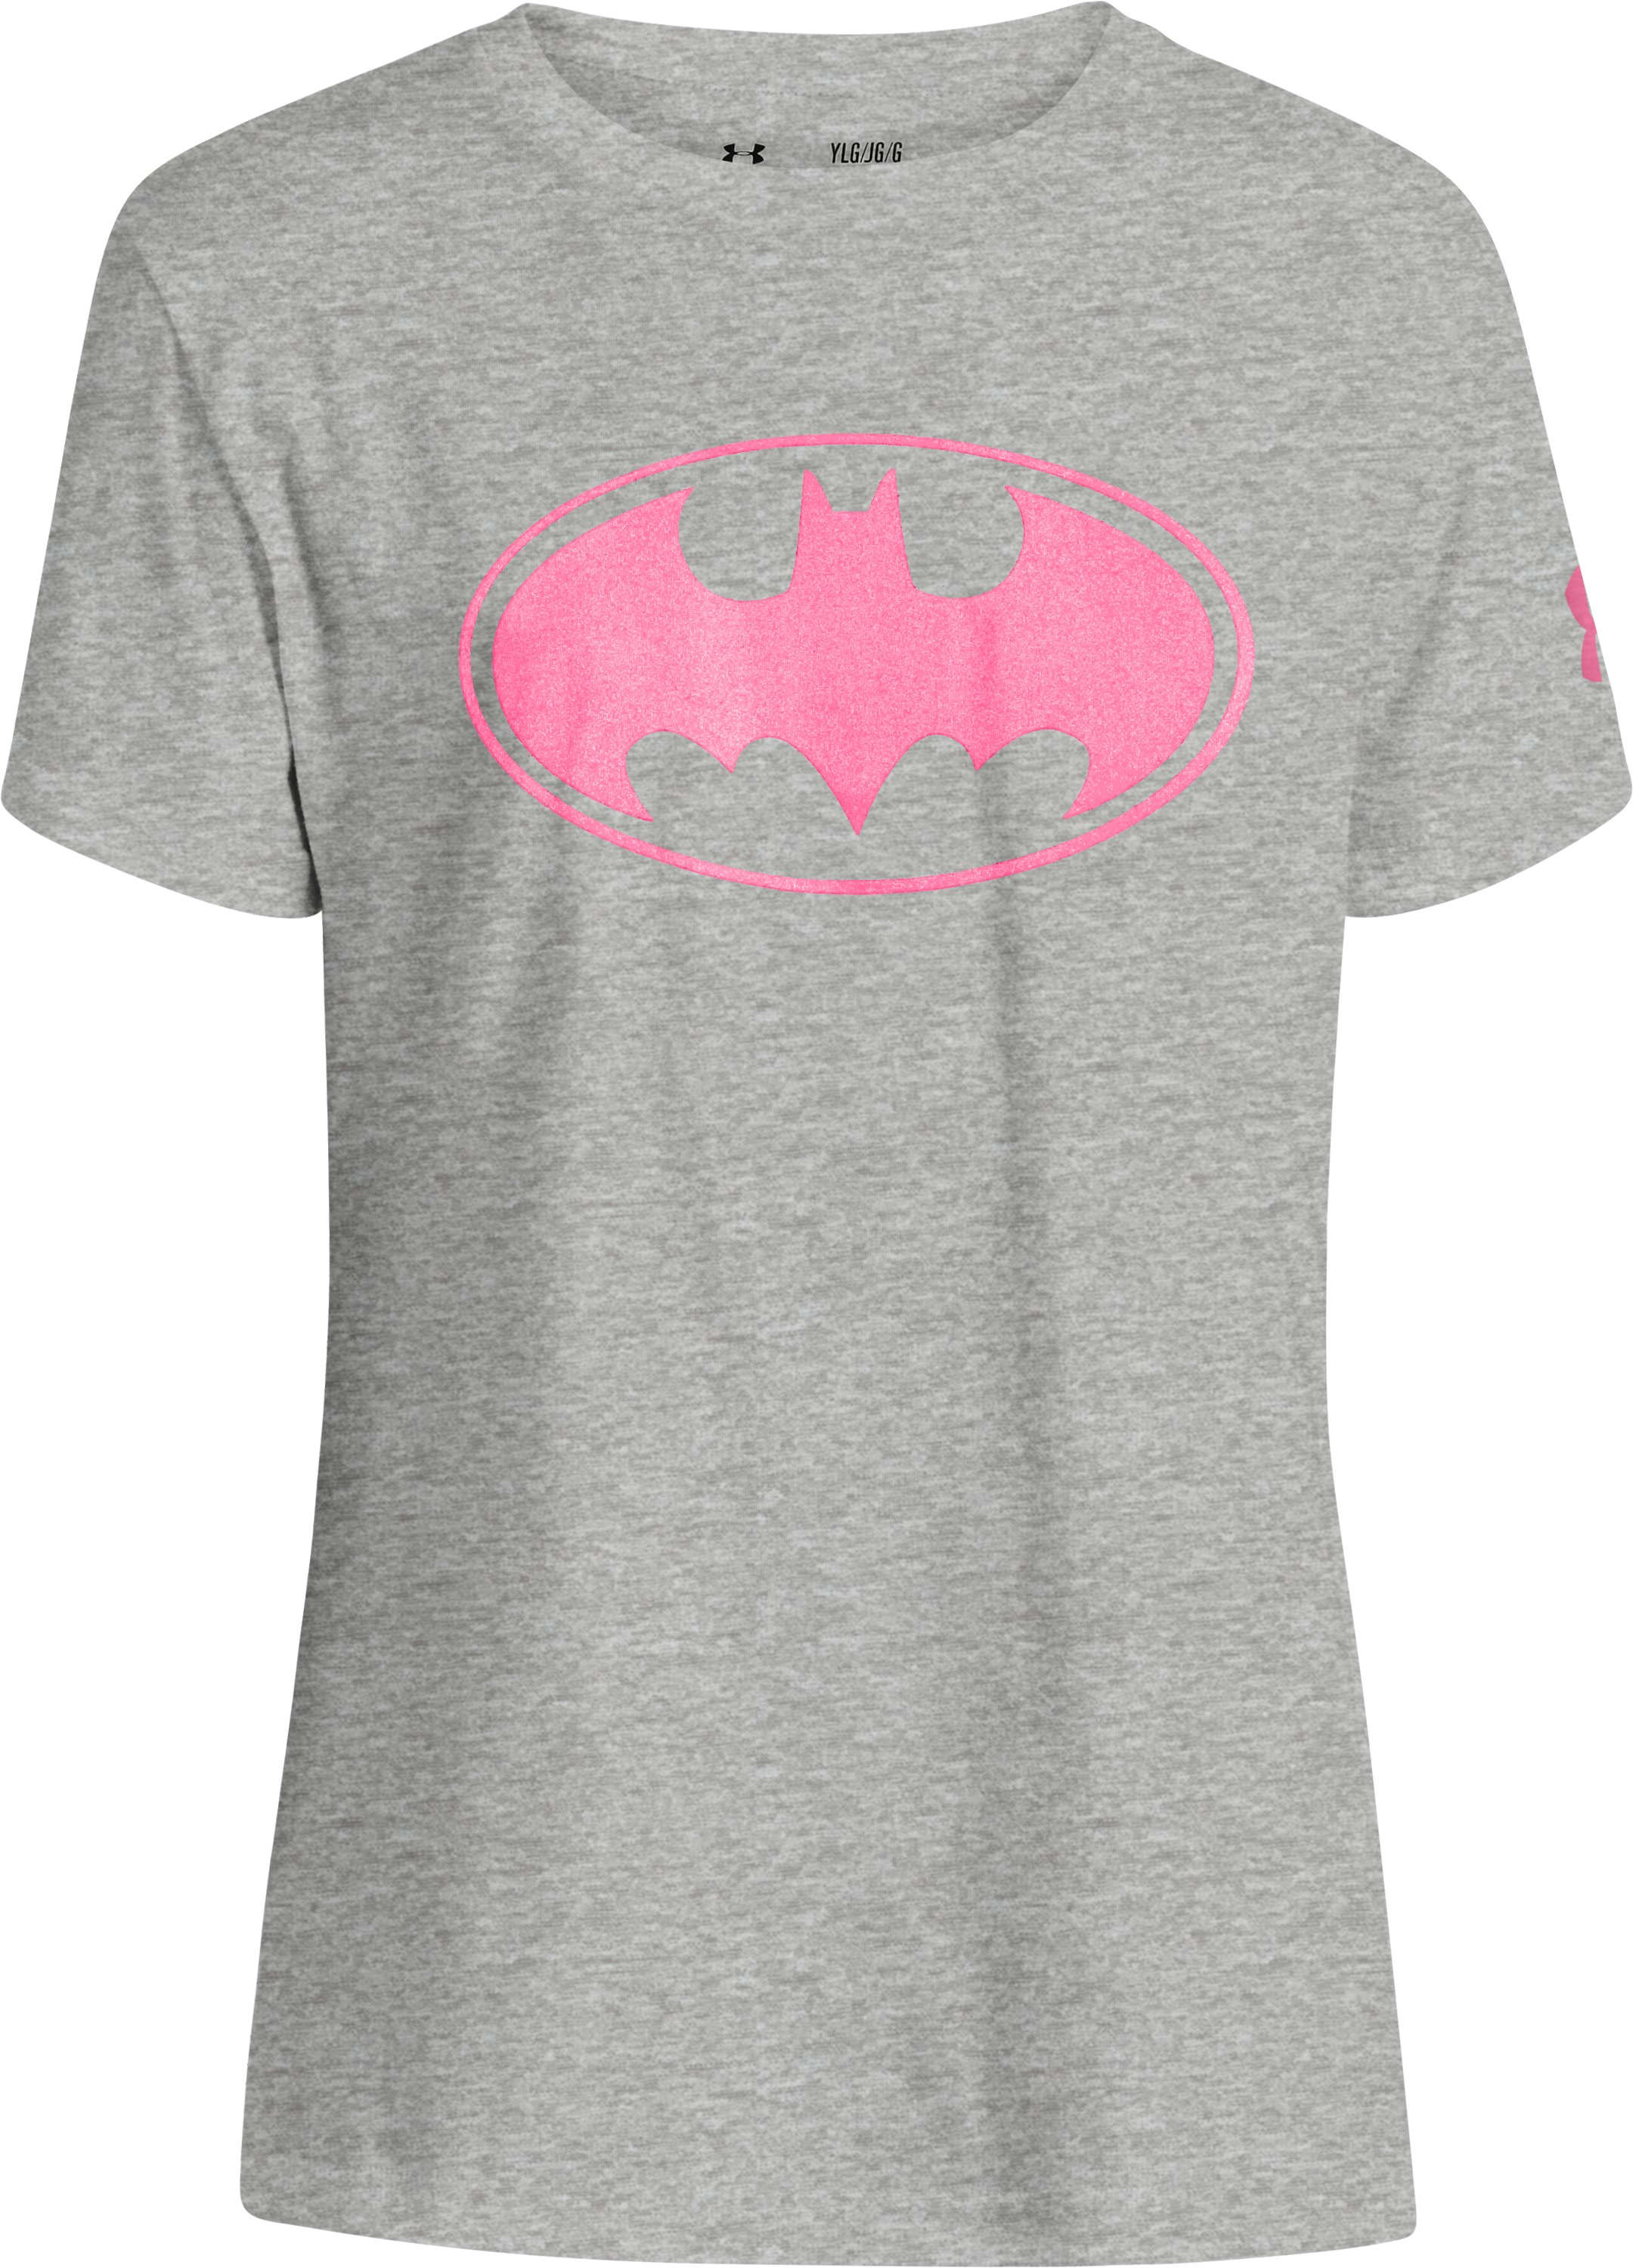 Girls' Under Armour® Alter Ego Batgirl Sparkle T-Shirt, True Gray Heather, undefined